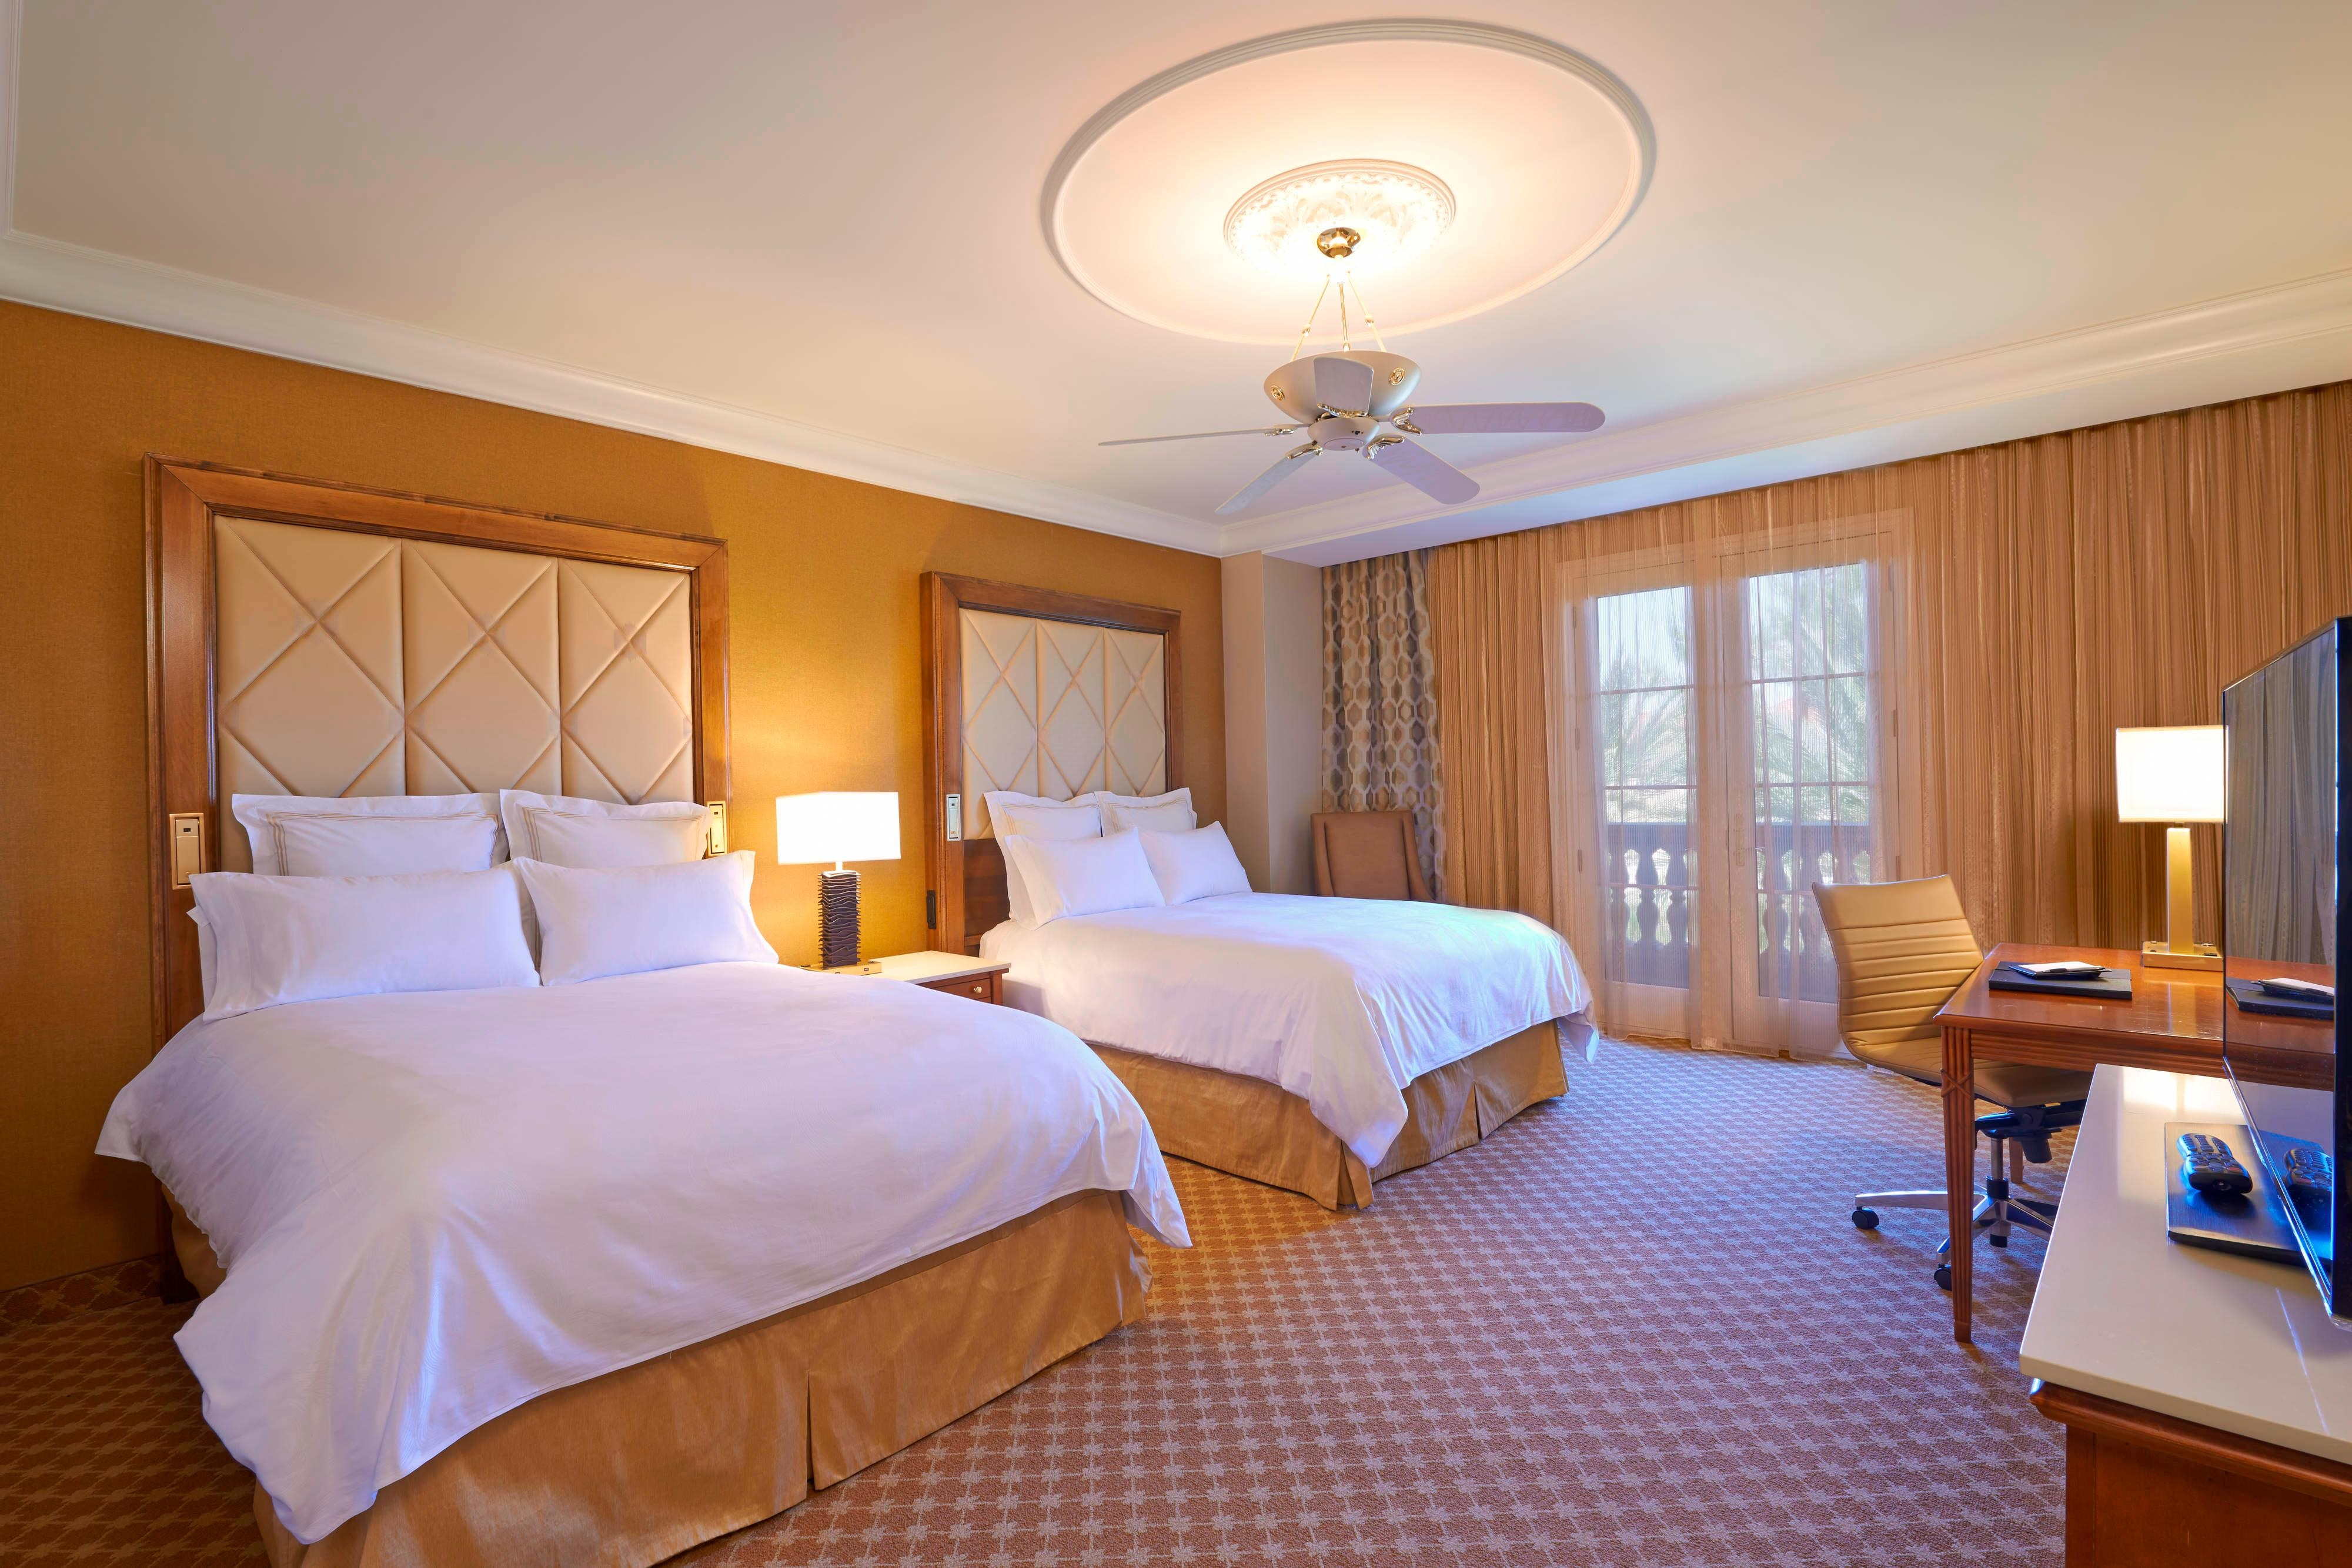 Hotel Rooms With Spa Luxury Hotel Rooms Las Vegas, Nevada | Jw Marriott Las